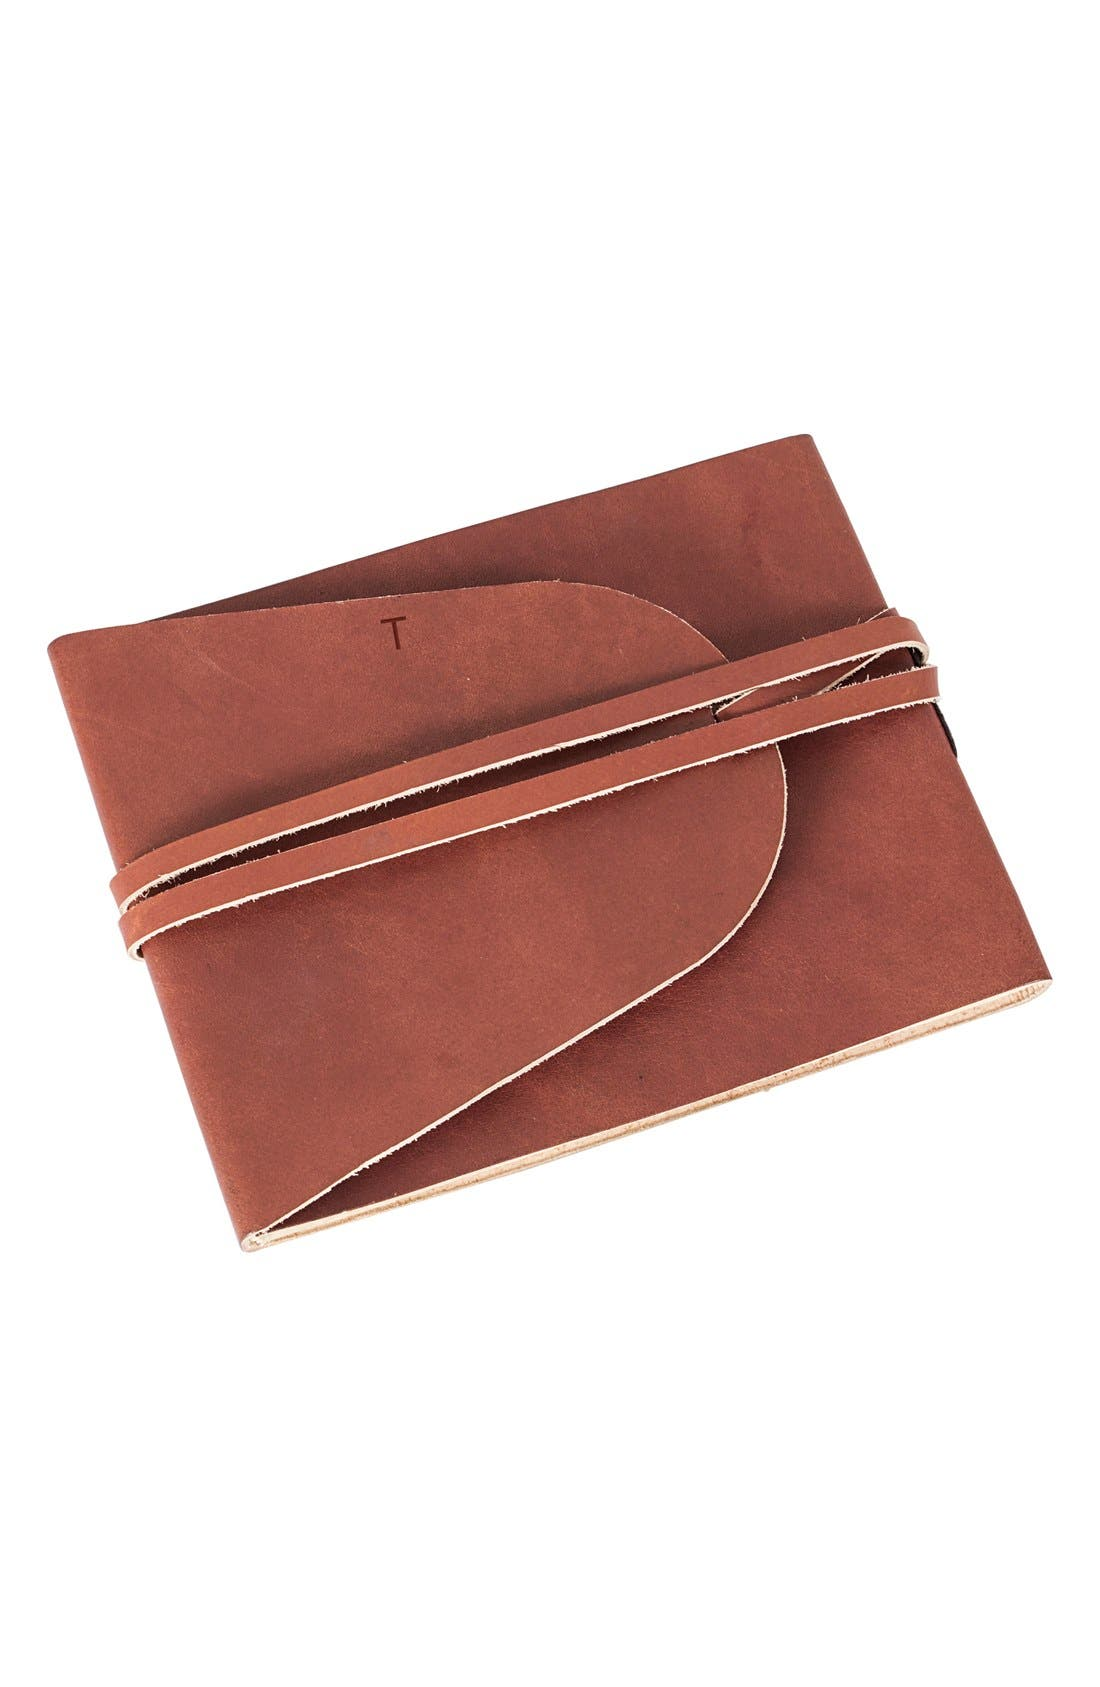 Cathy's Concepts Monogram Leather Guest Book